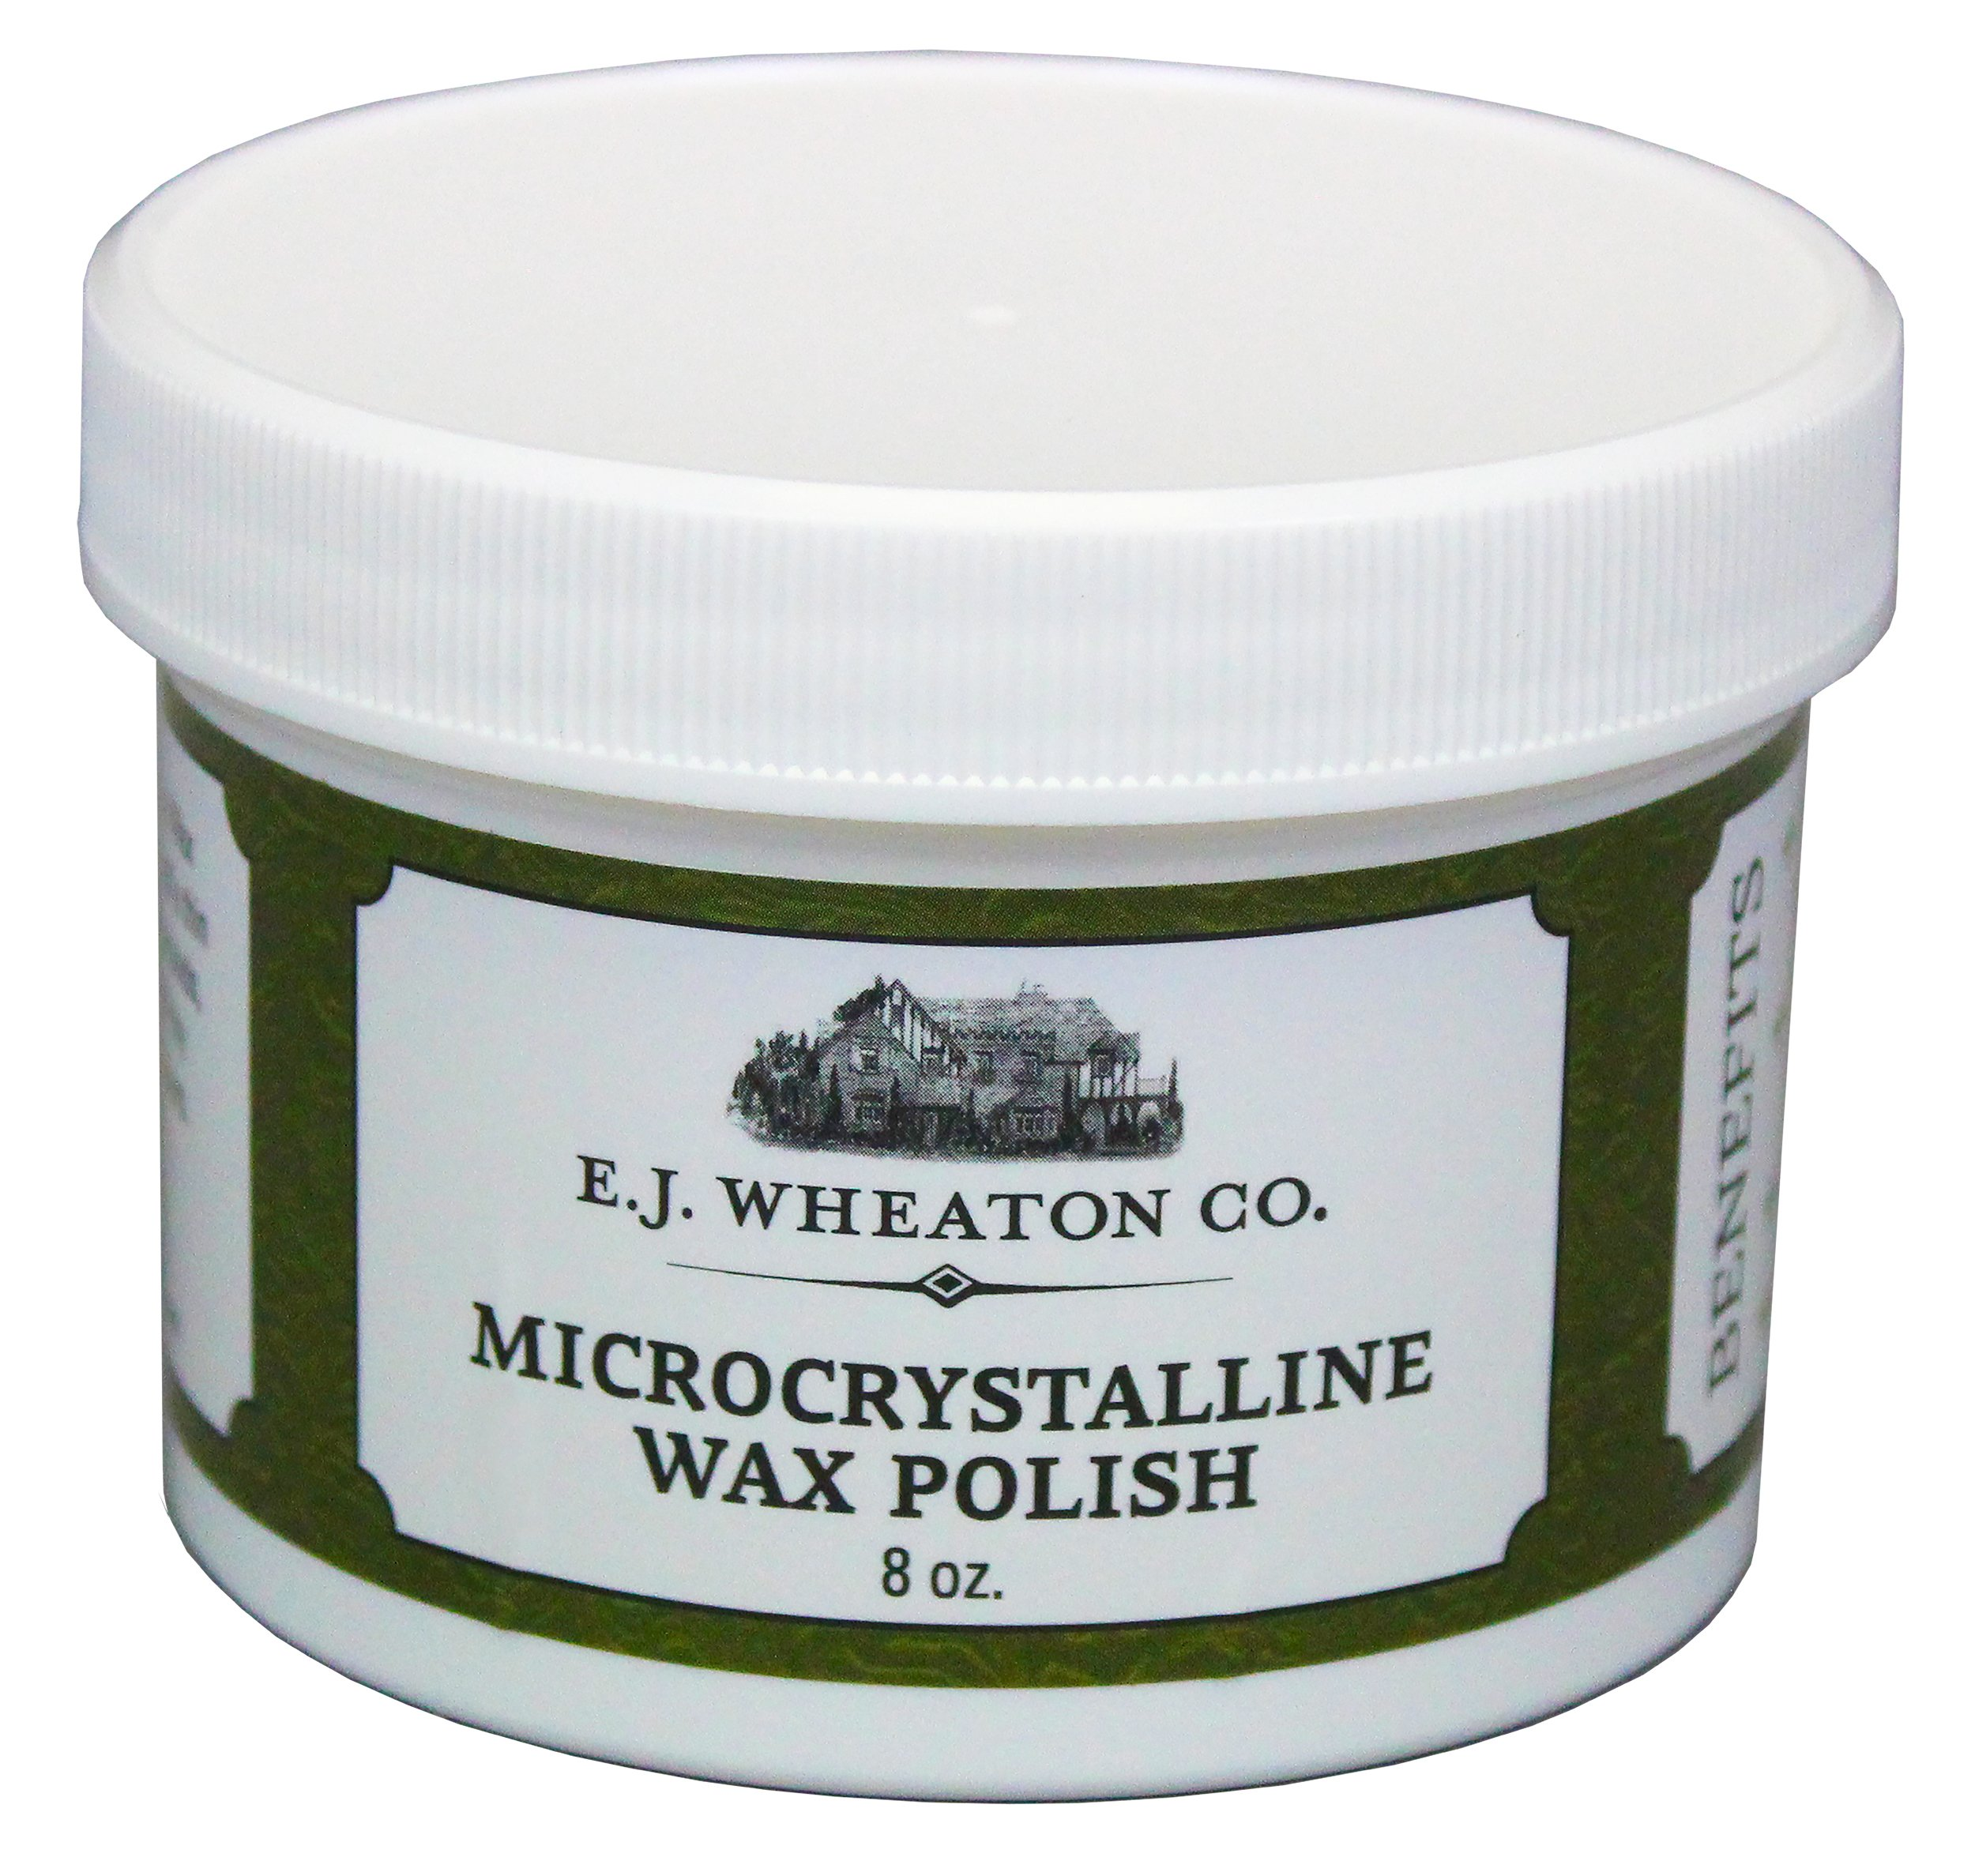 E.J. Wheaton Co. Microcrystalline Wax Polish, Preserves and Protects Metal, Leather and Wood Surfaces, Made in USA (8 oz.) by E.J. WHEATON CO.